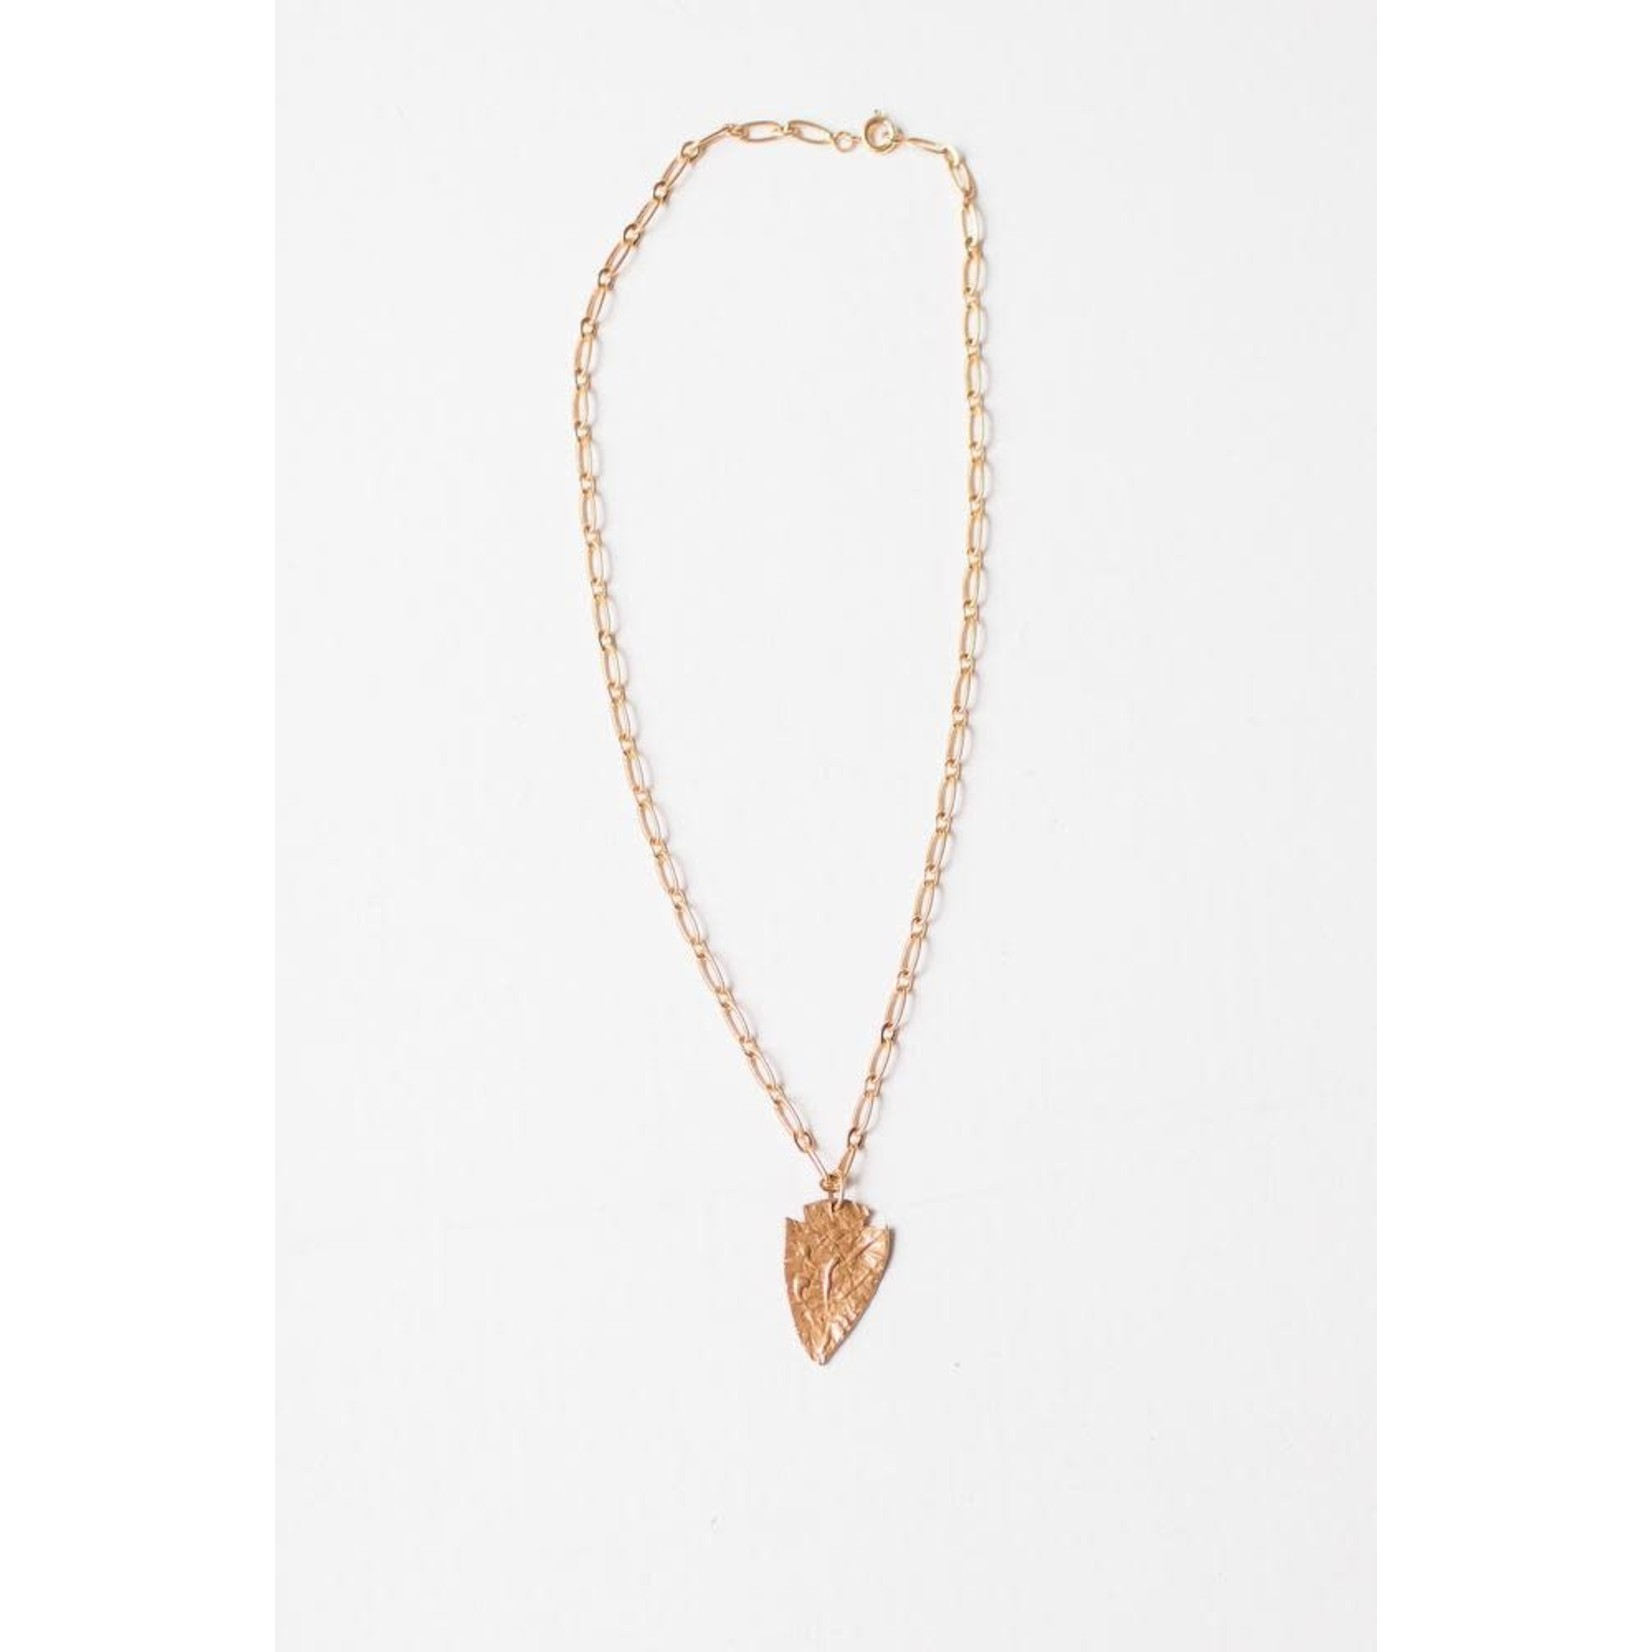 Leslie Curtis Jewelry Designs Charlie Hammered Arrowhead Necklace